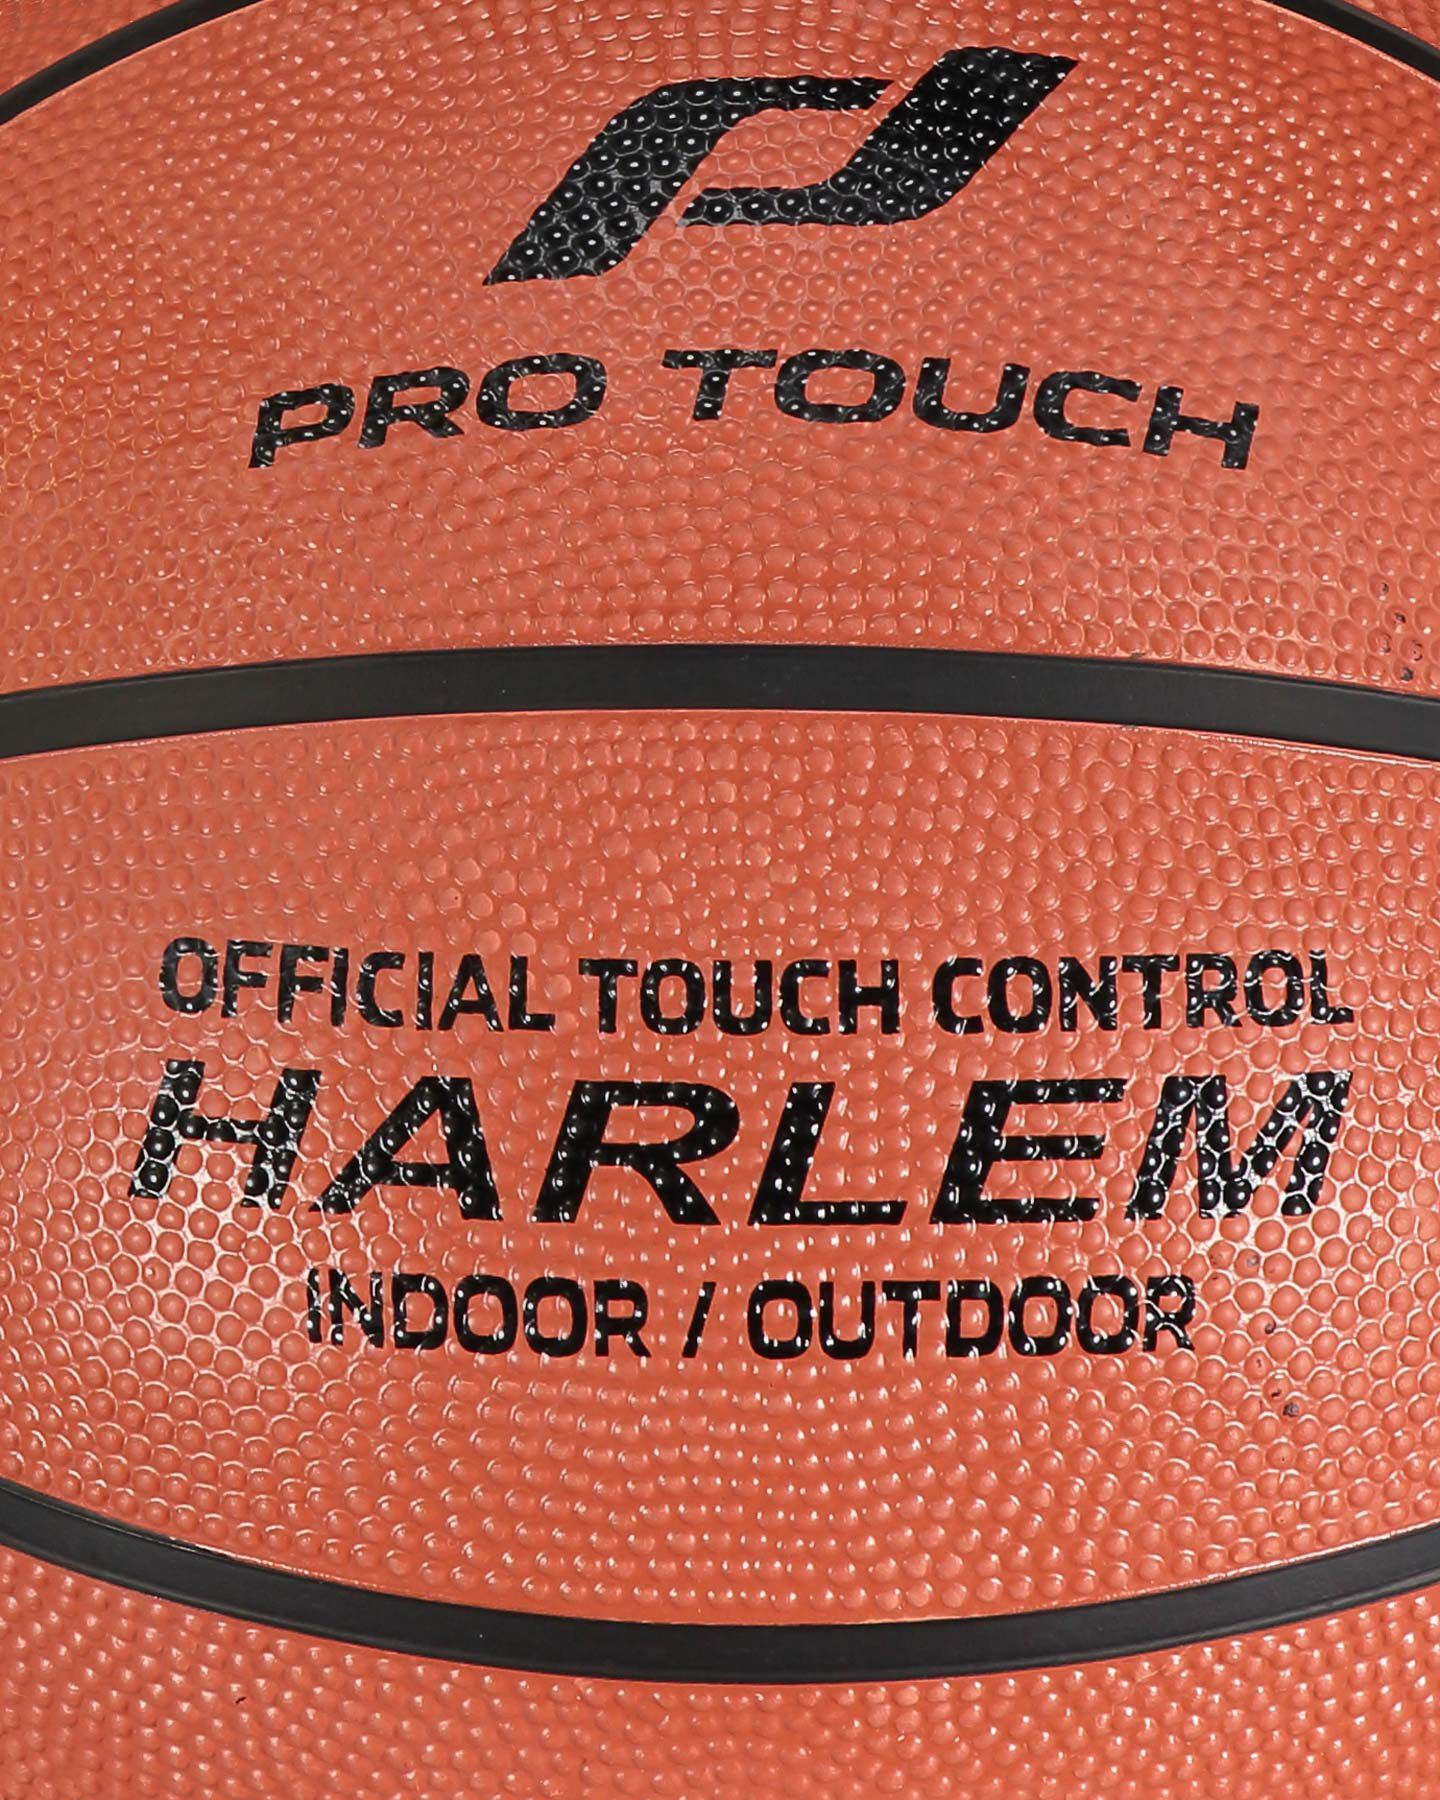 Pallone basket PRO TOUCH HARLEM MIS. 5 S1246134 973 UNI scatto 1